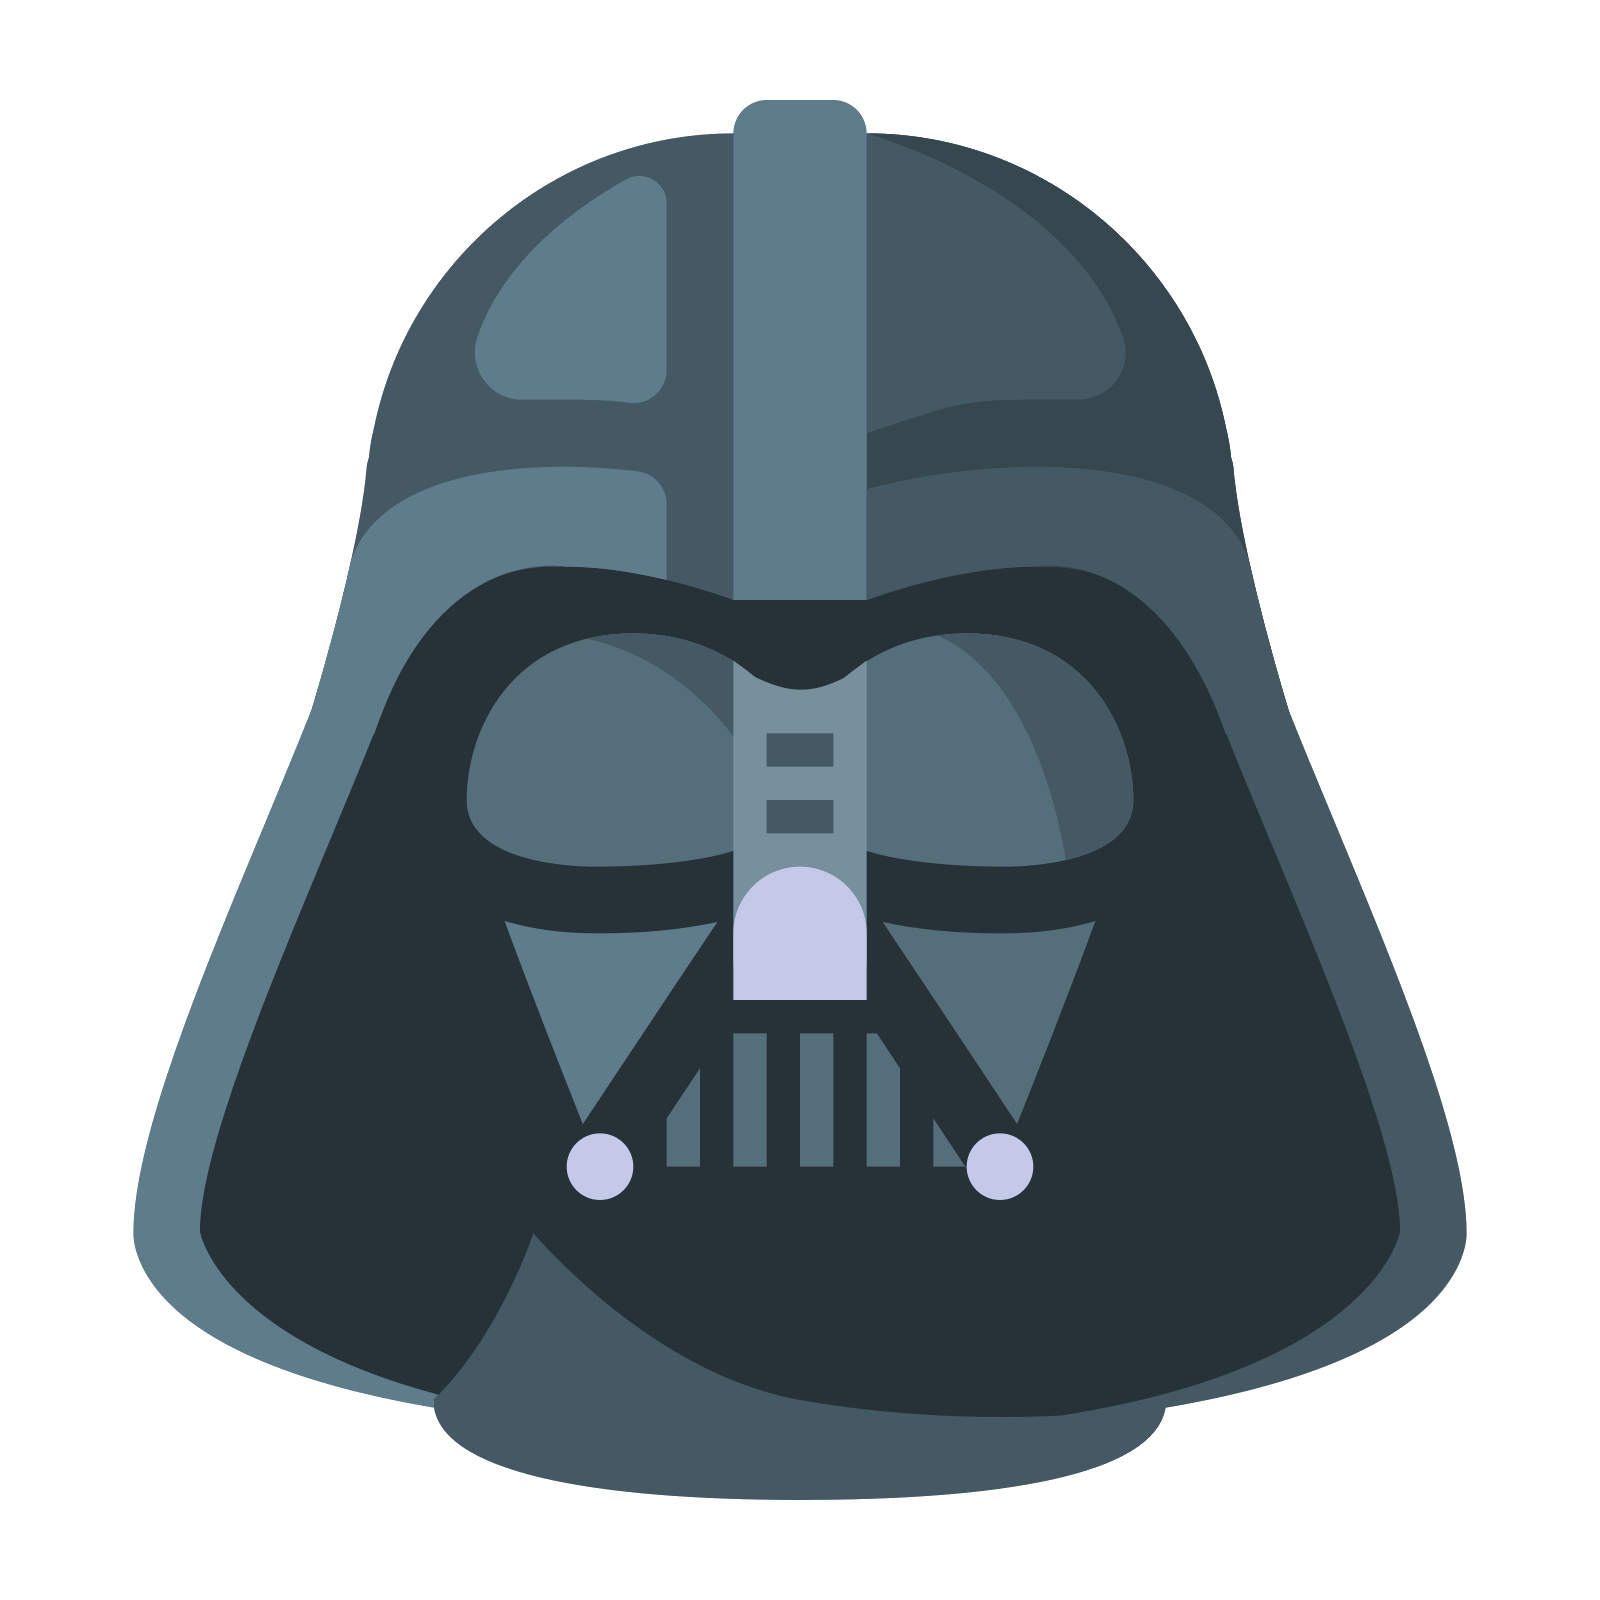 Darth vader clipart flat. Mask vector kenhtruyen info